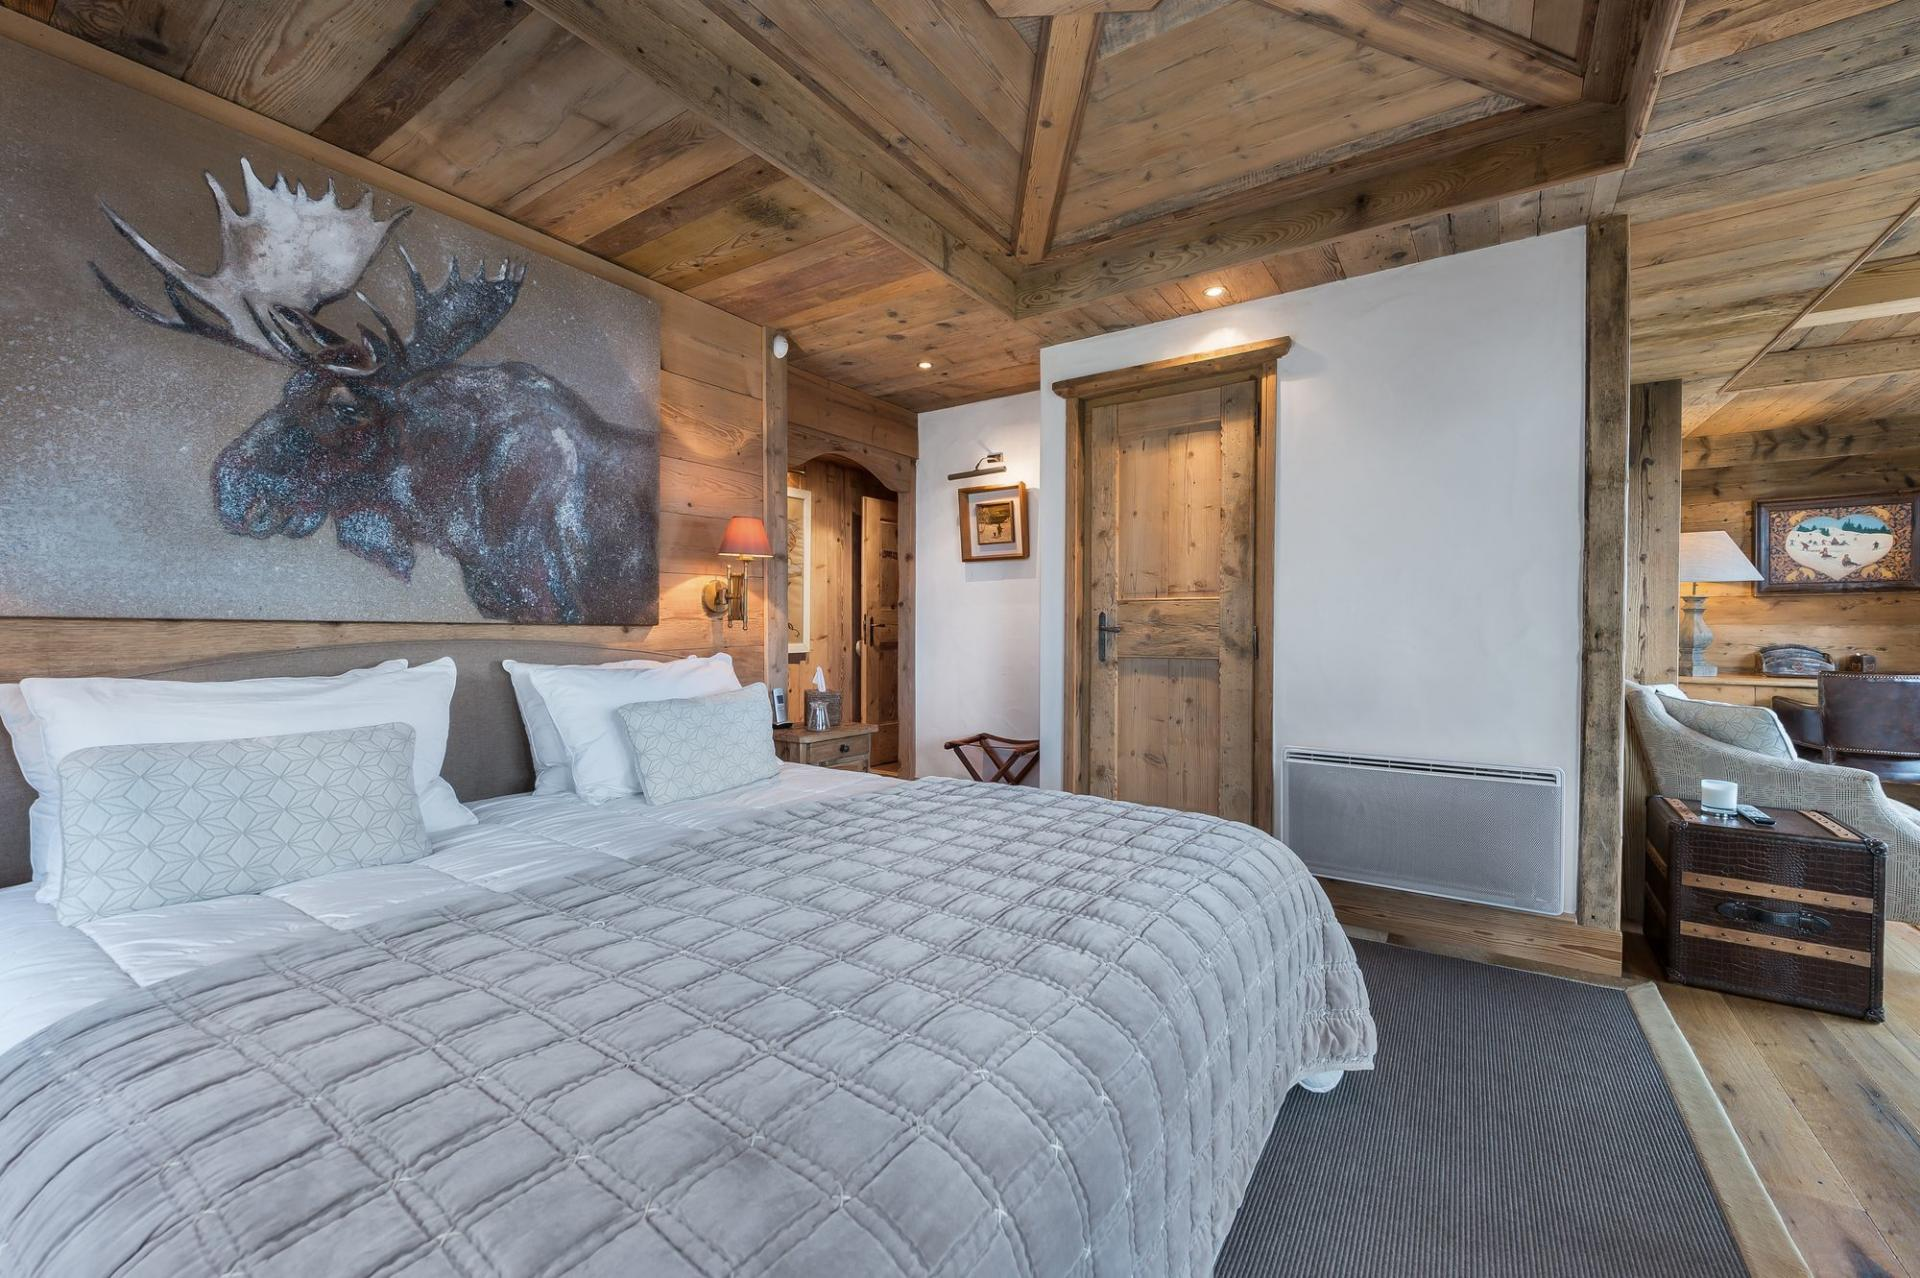 ONE OF THE  BEDROOMS IN CHALET BELLECOTE